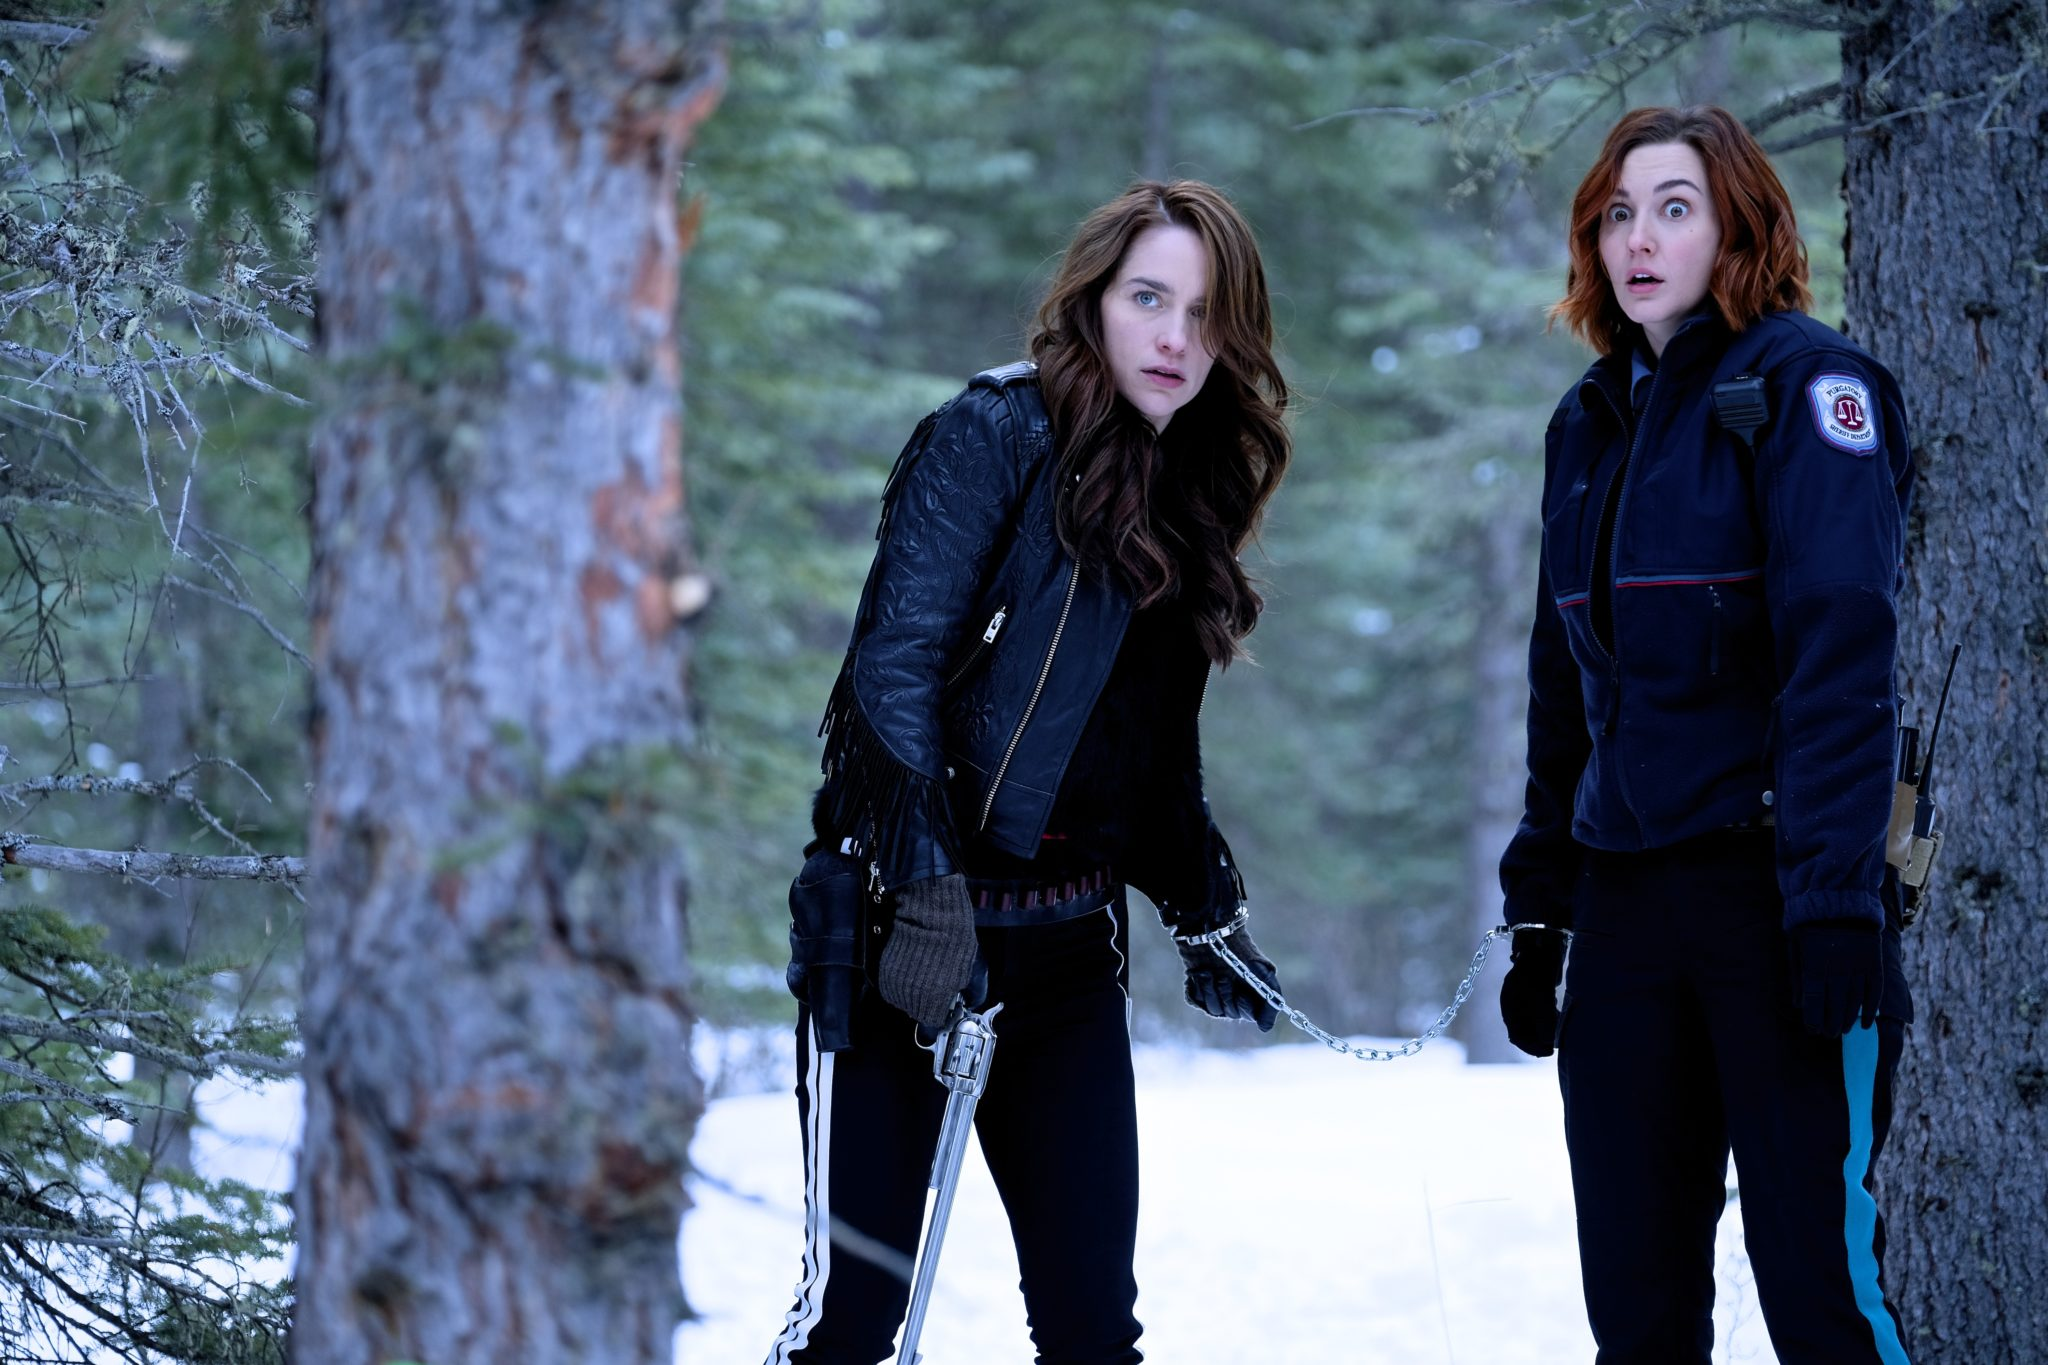 Wynonna and Nicole handcuffed together in the woods.